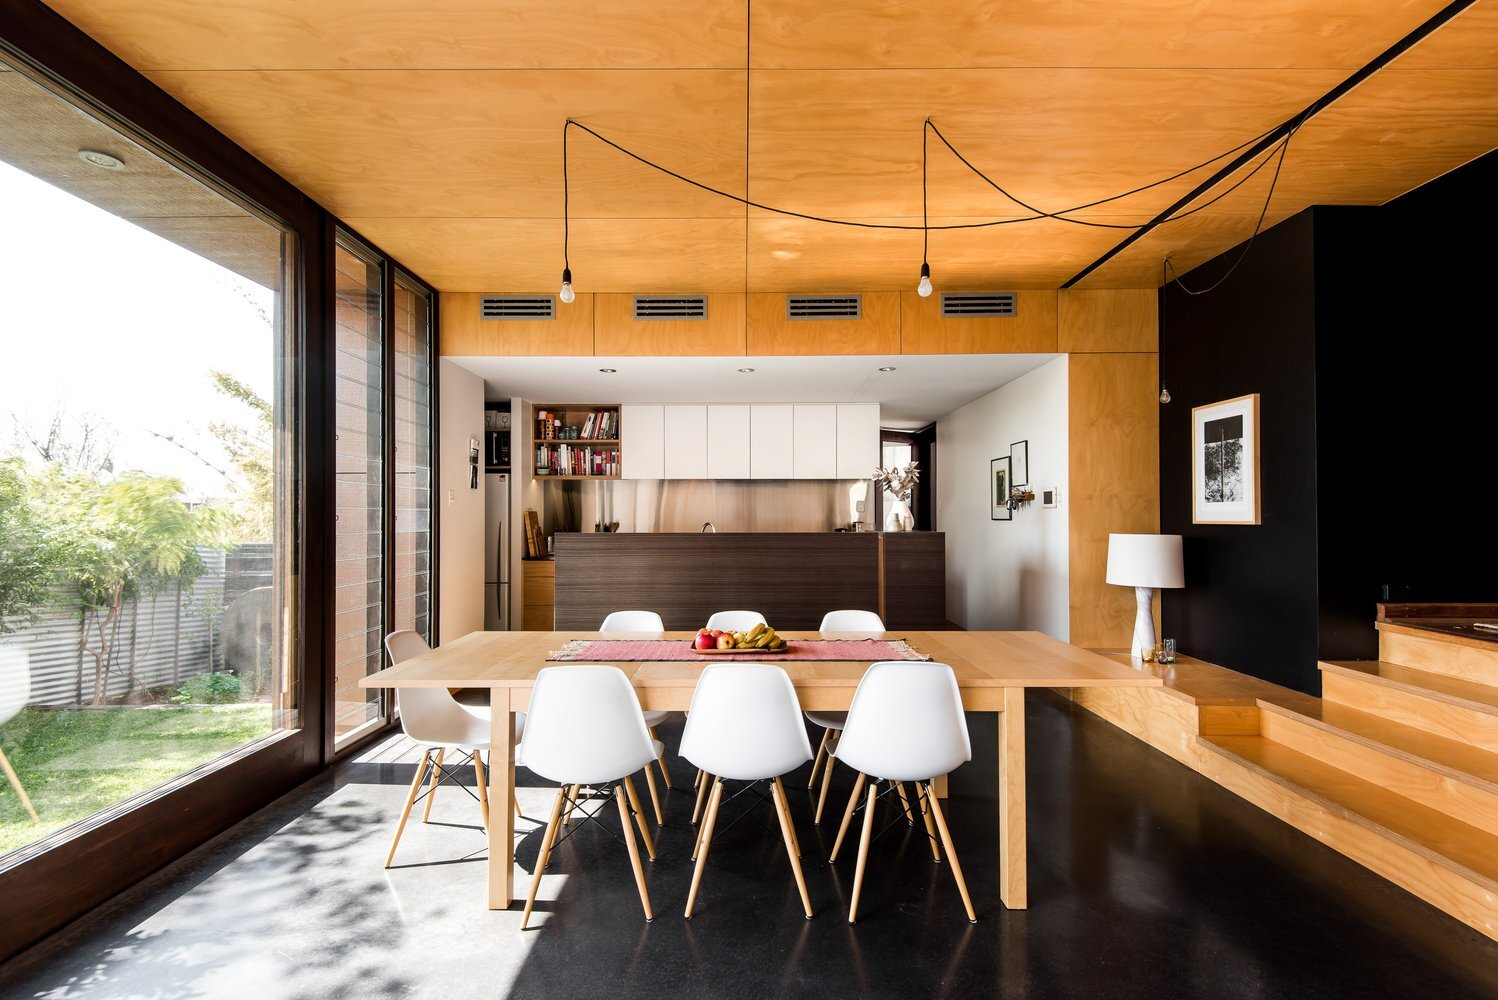 Gresley Monk Residence - Gresley Abas Architects + Justine Monk Design - Australia - Dining Room - Humble Homes